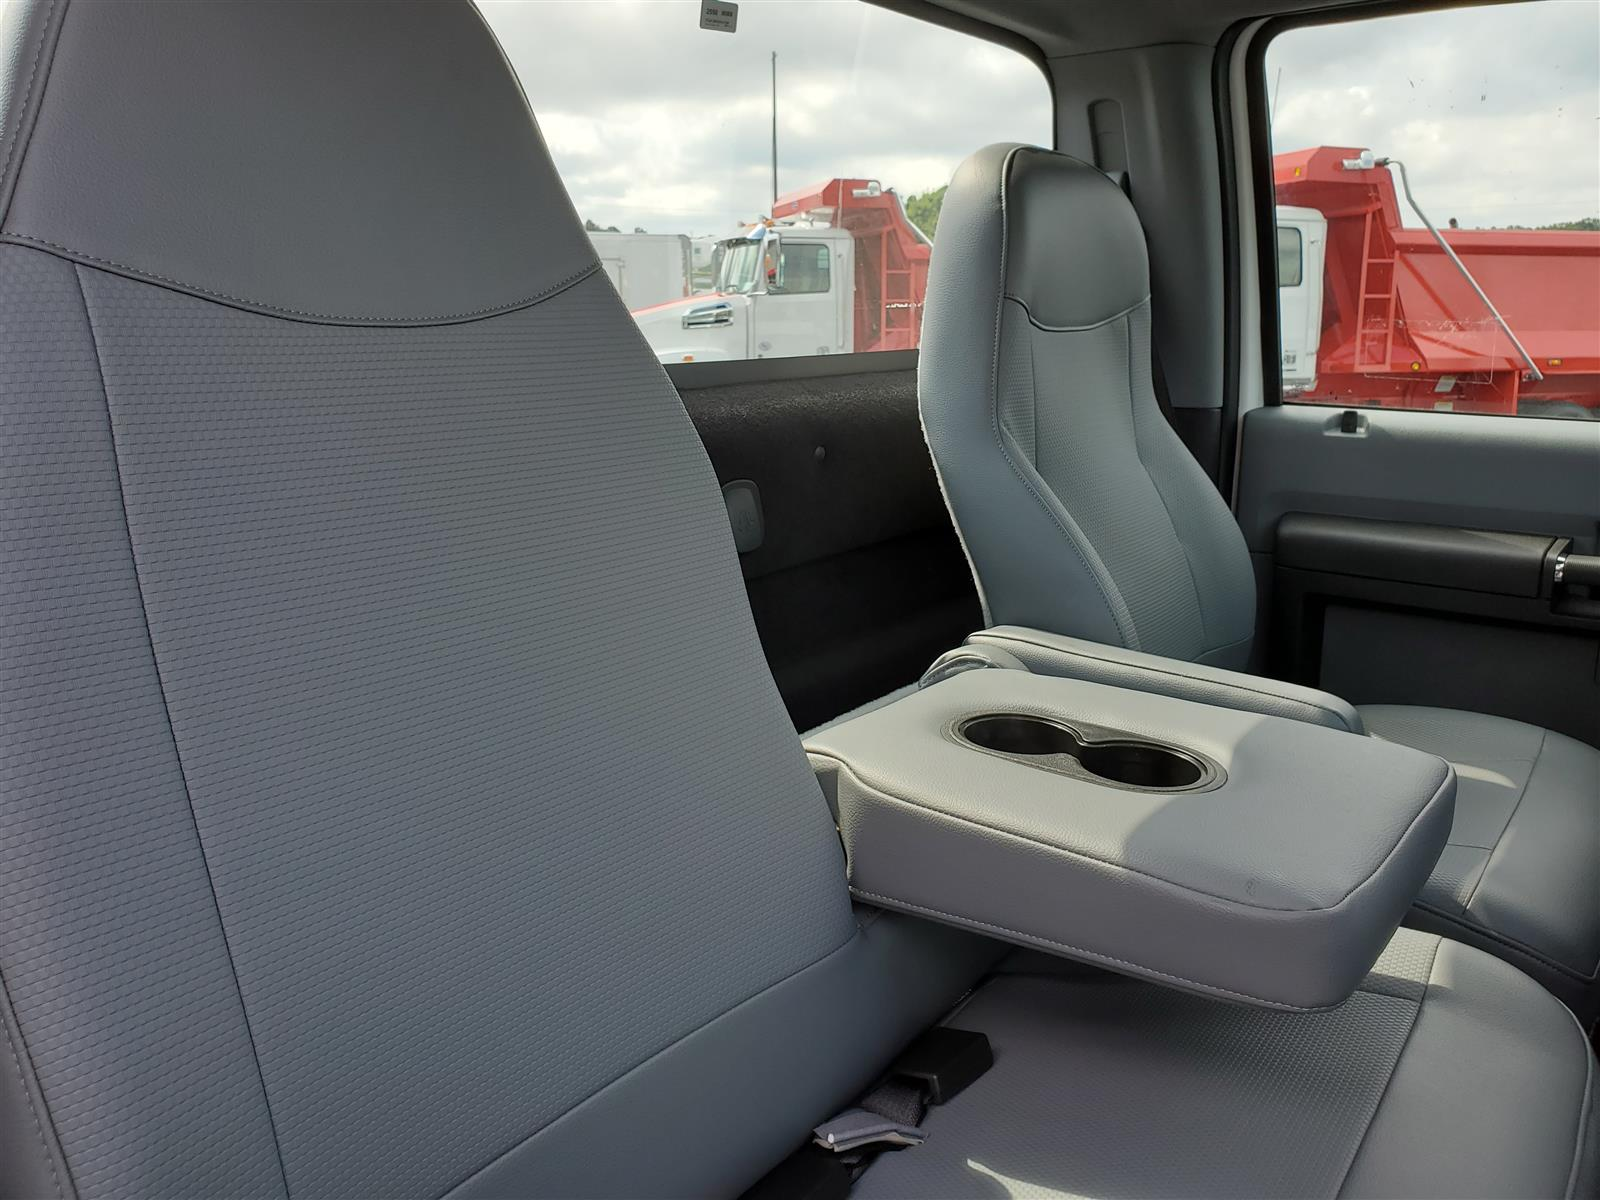 2021 Ford F-650 Regular Cab DRW 4x2, Cab Chassis #MDF02552 - photo 10